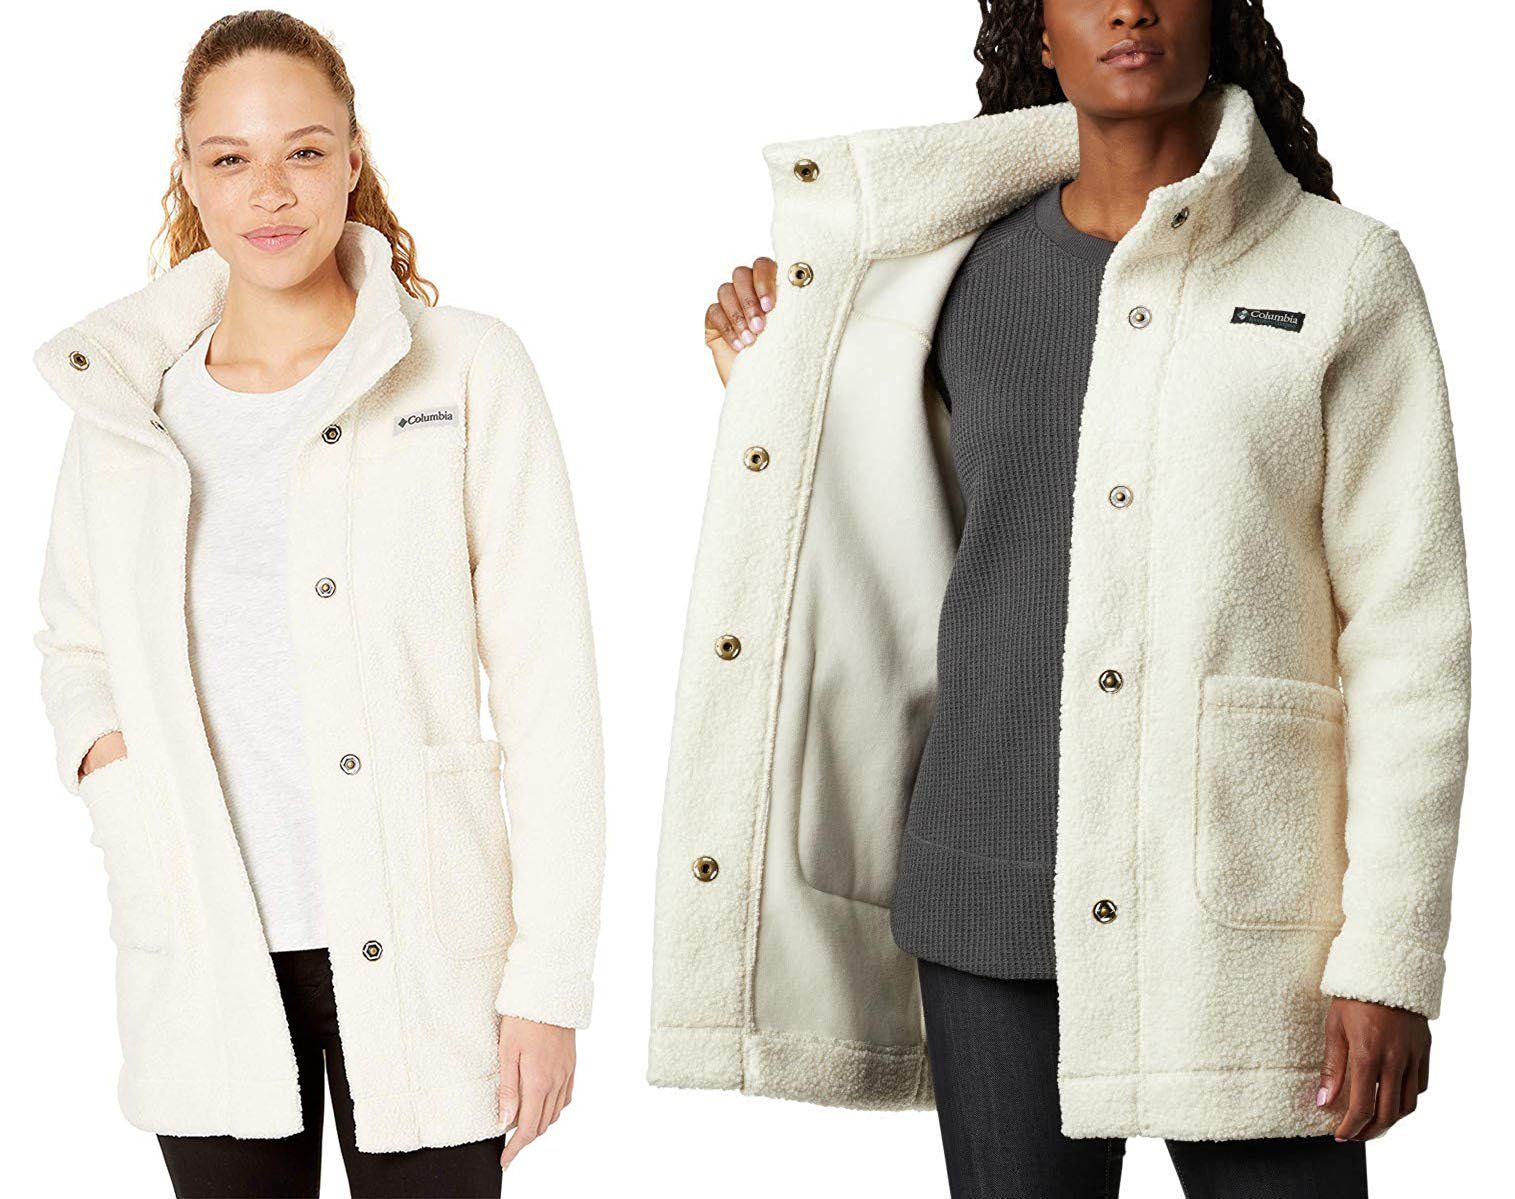 Bundle up in this warm and cozy but lightweight Panorama jacket, which is available in classic colors